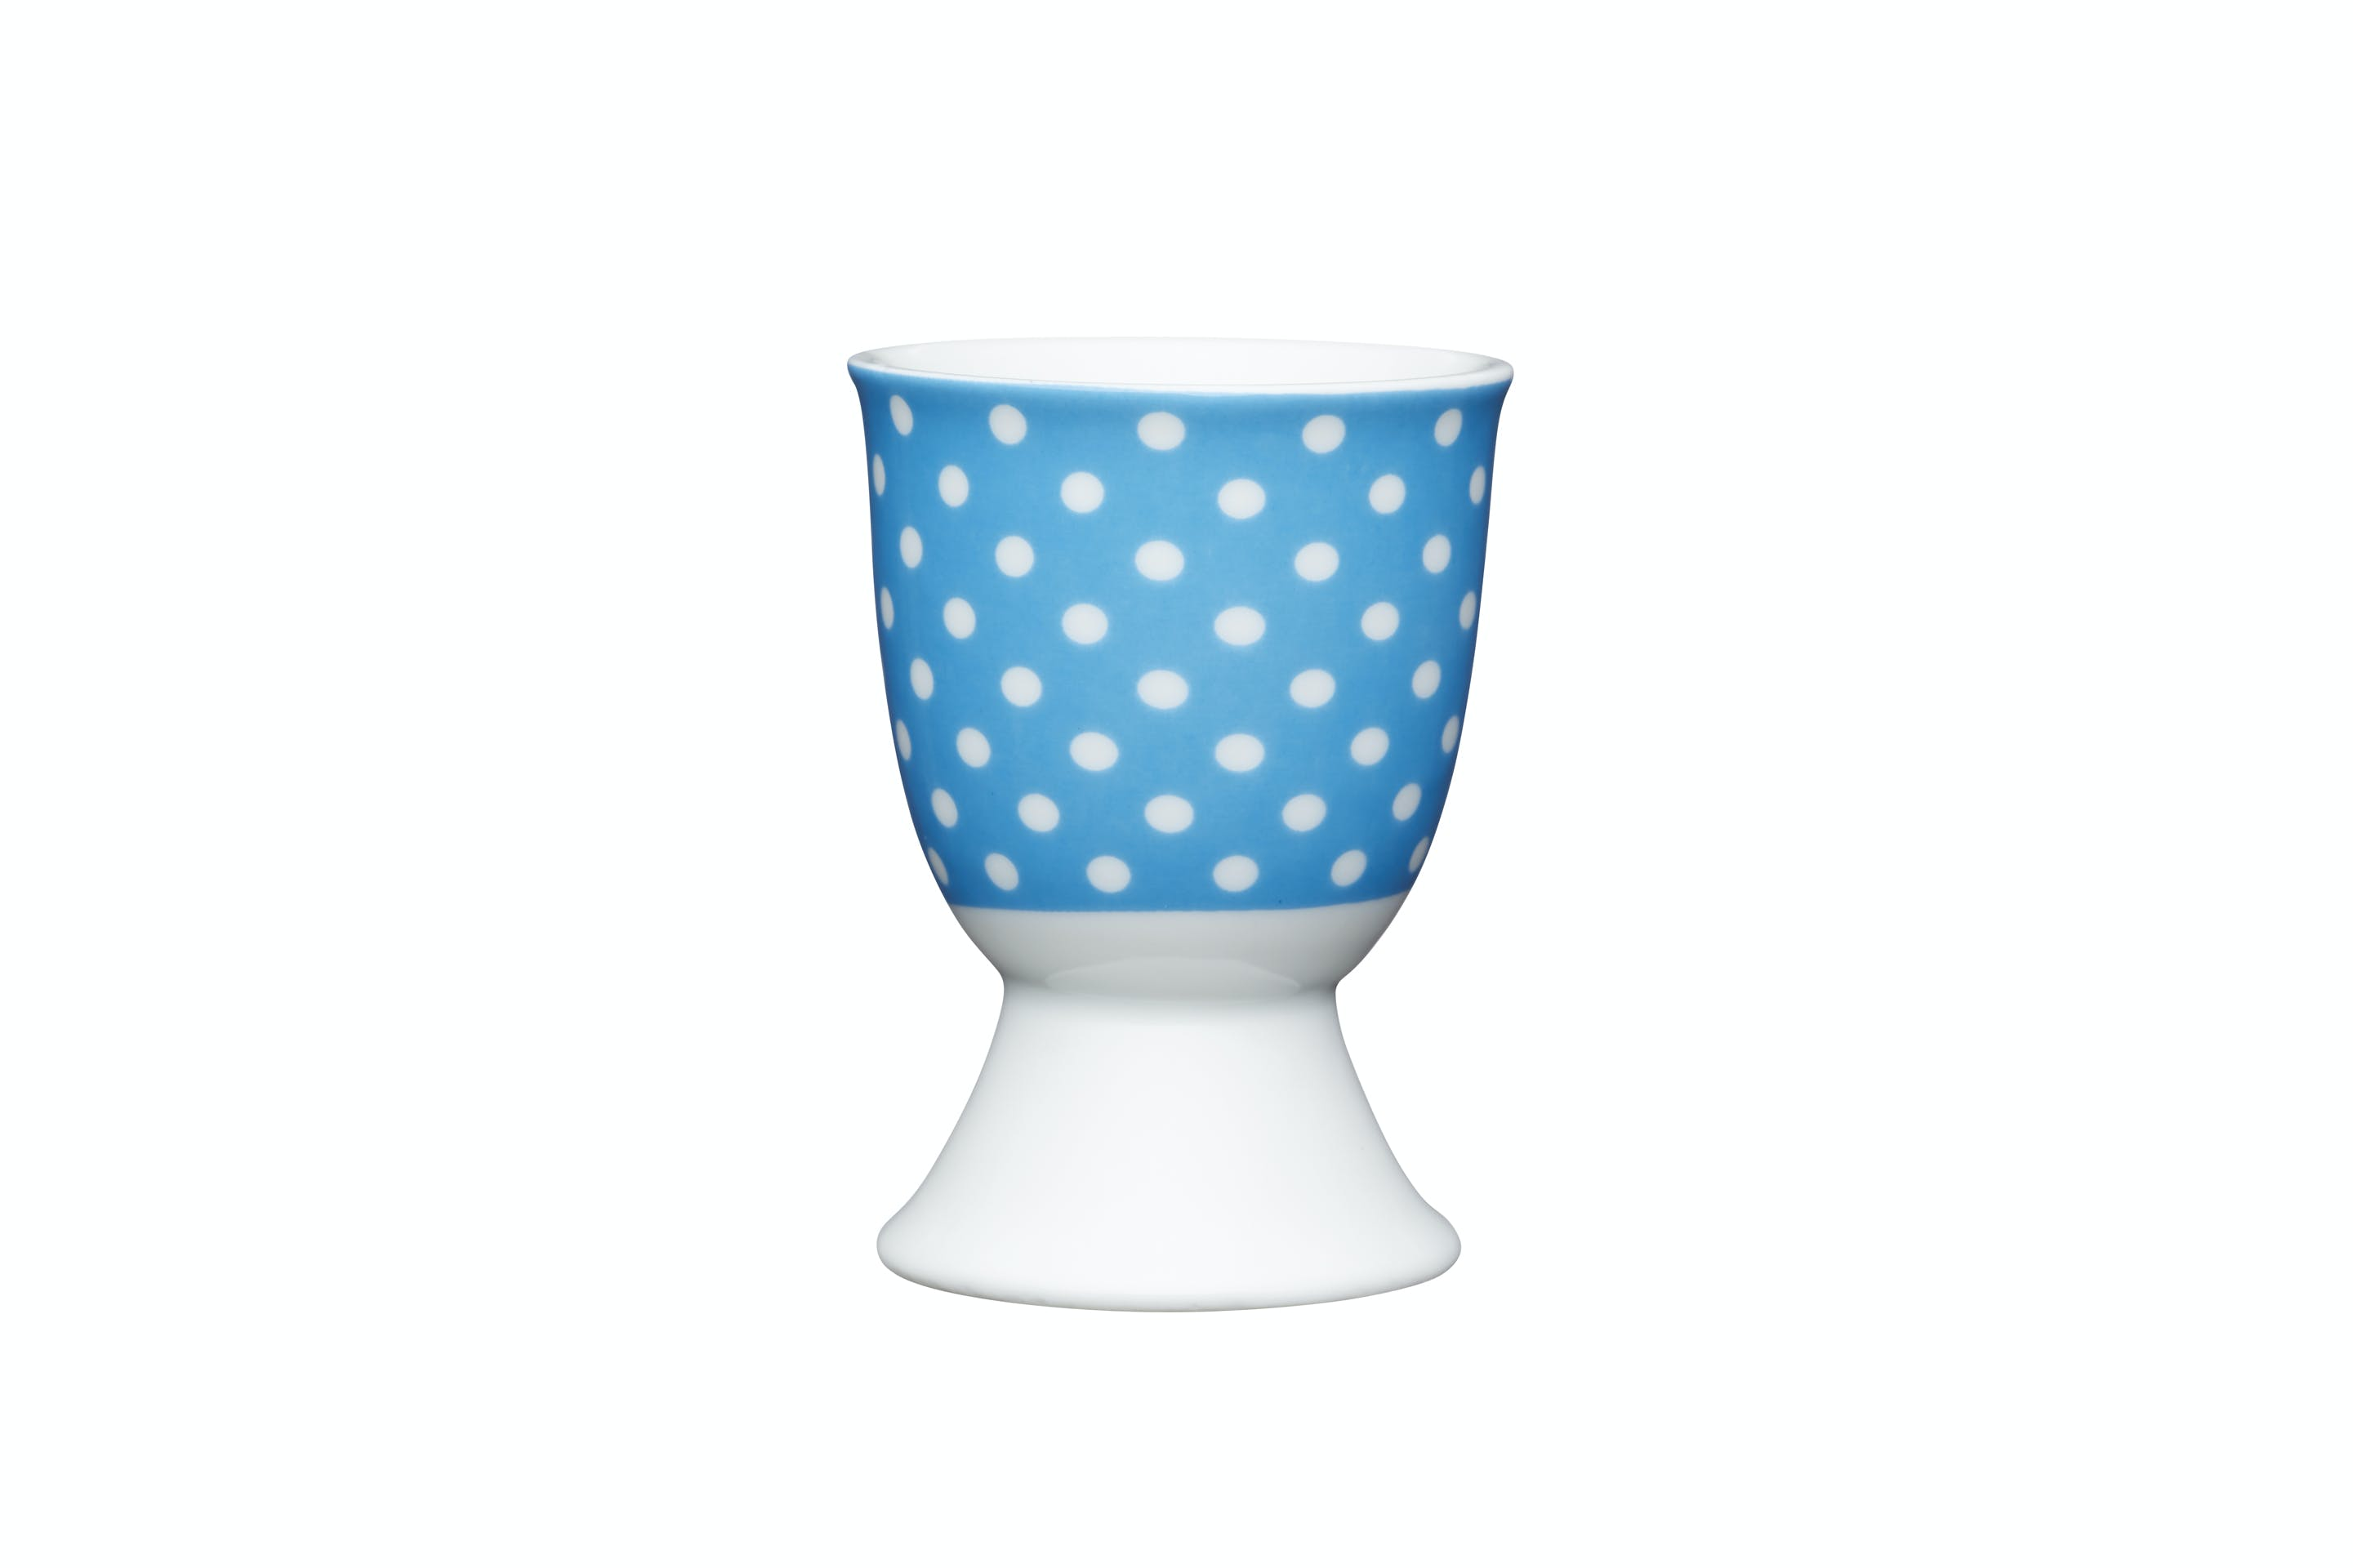 Kitchencraft Blue Polka Dot Porcelain Egg Cup Egg Cups